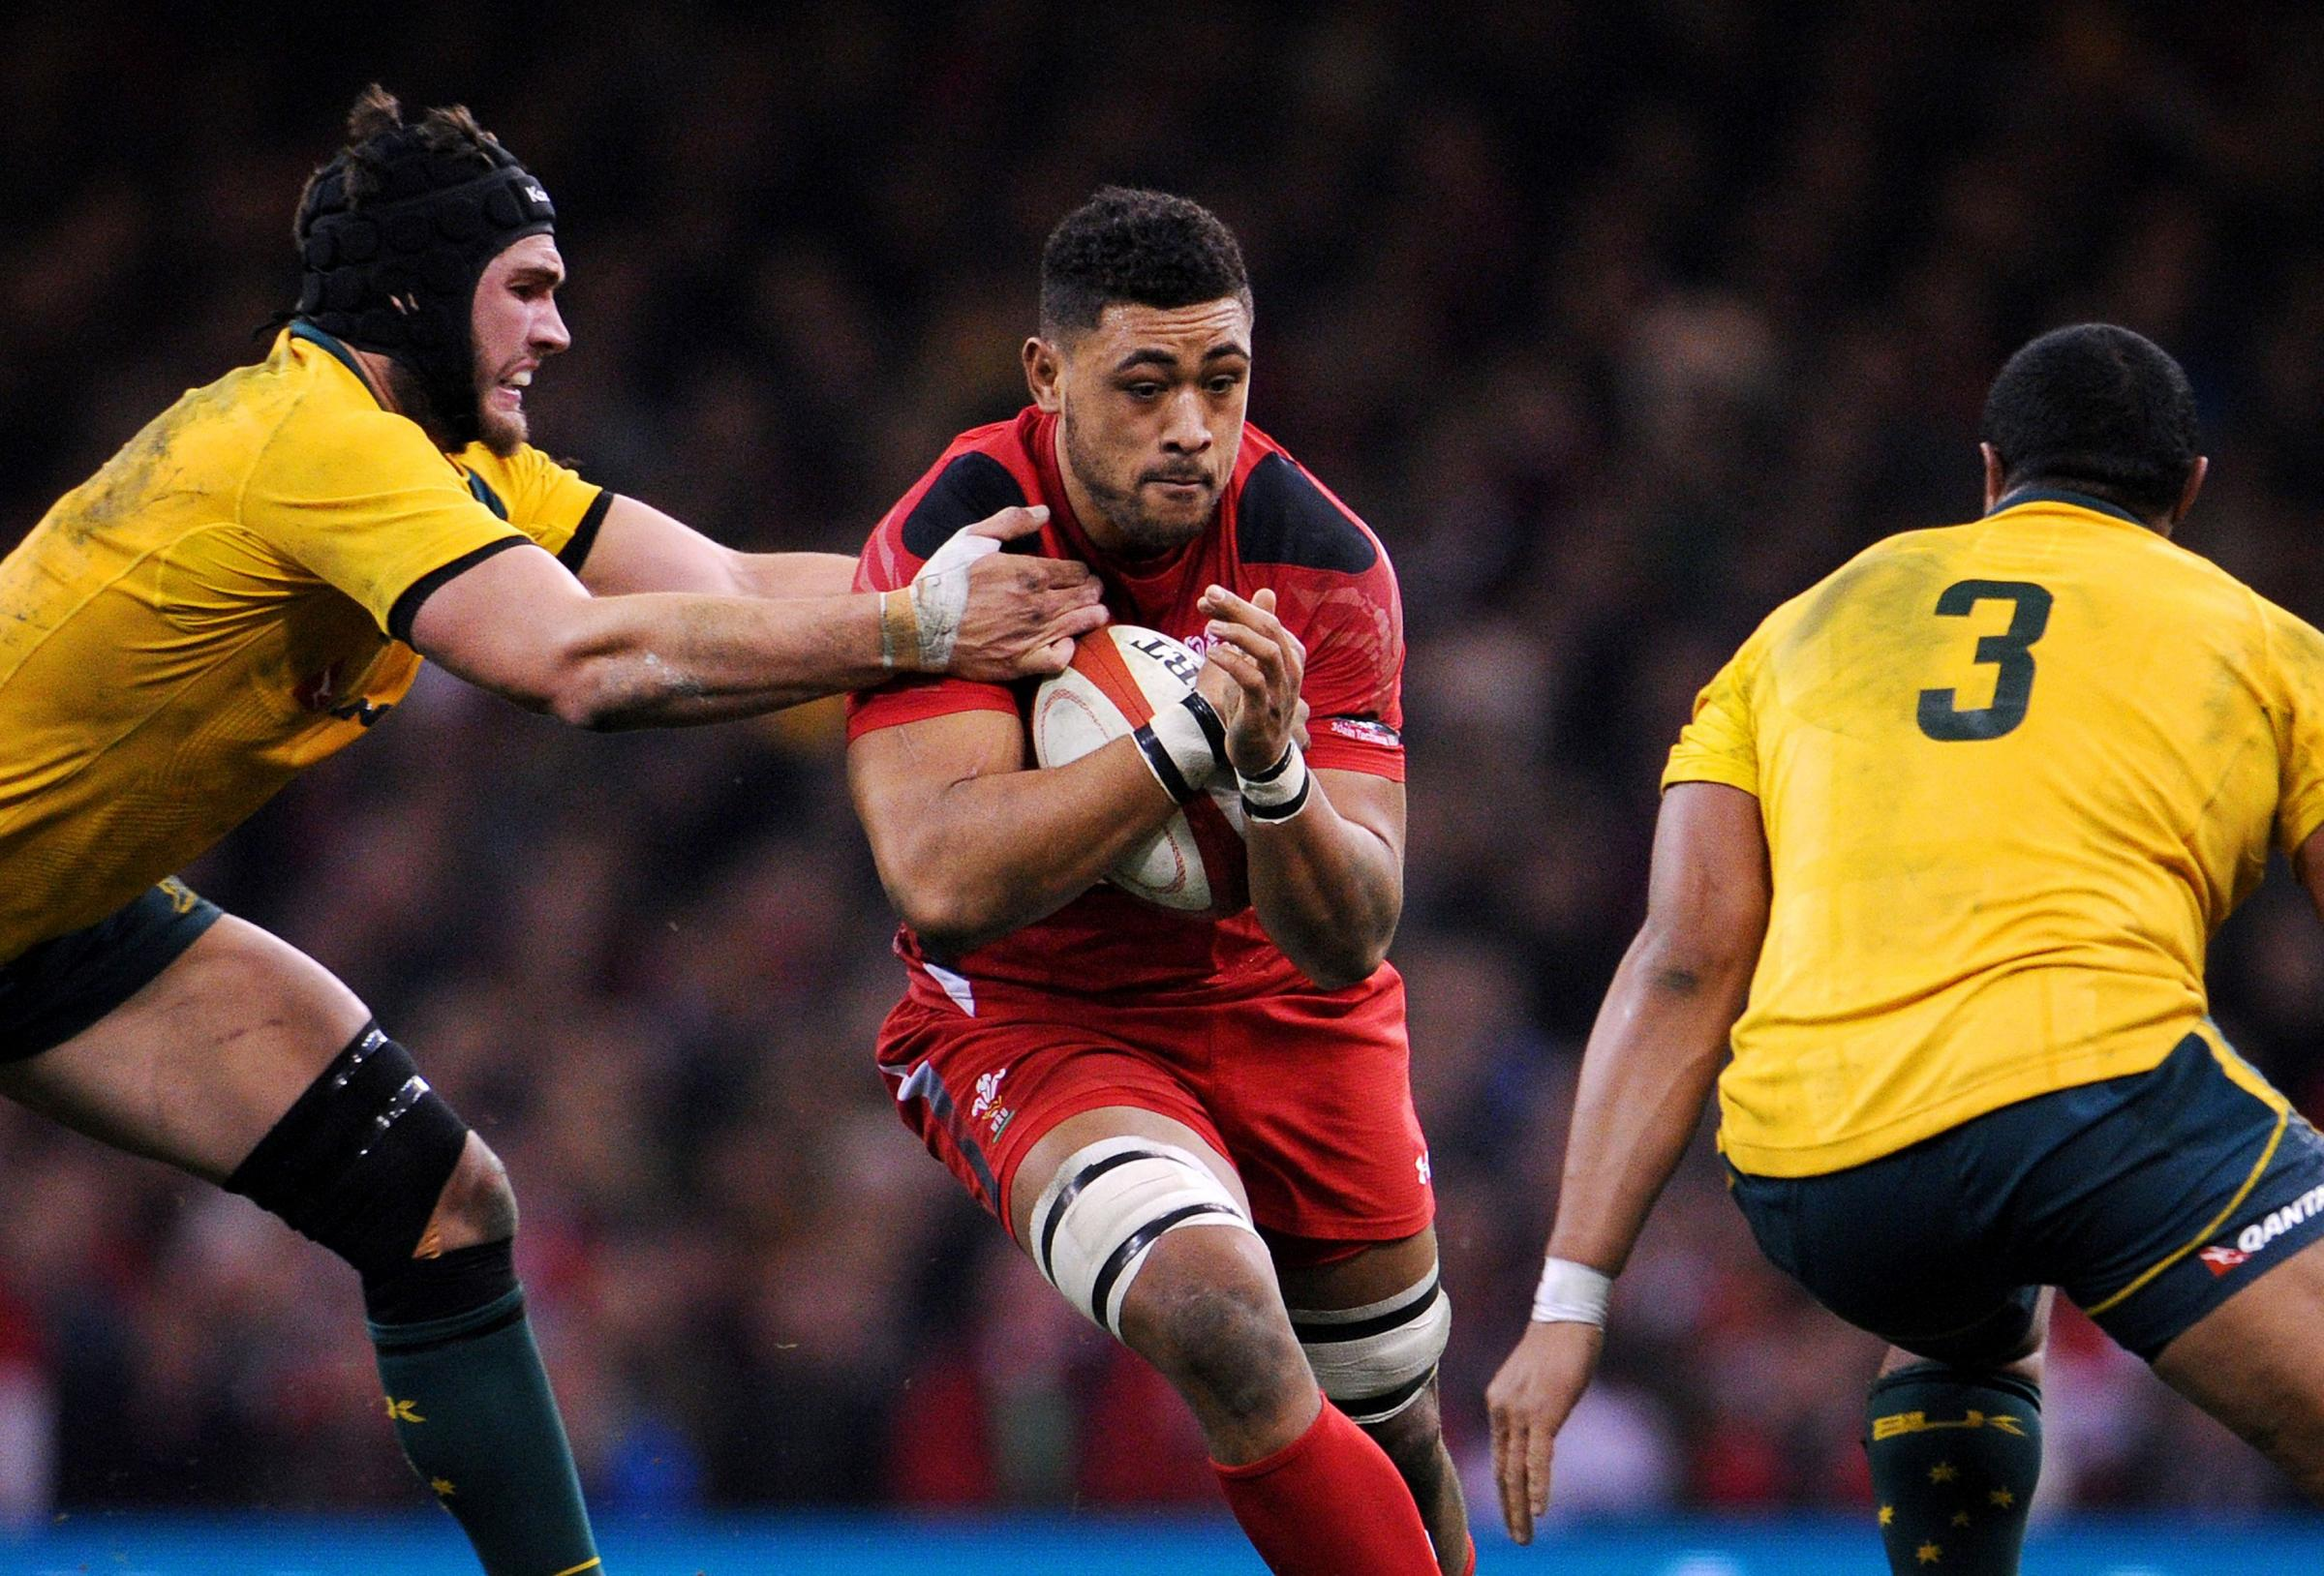 HE'S BACK: Toby Faletau will be back in action for the Newport Gwent Dragons this Friday night